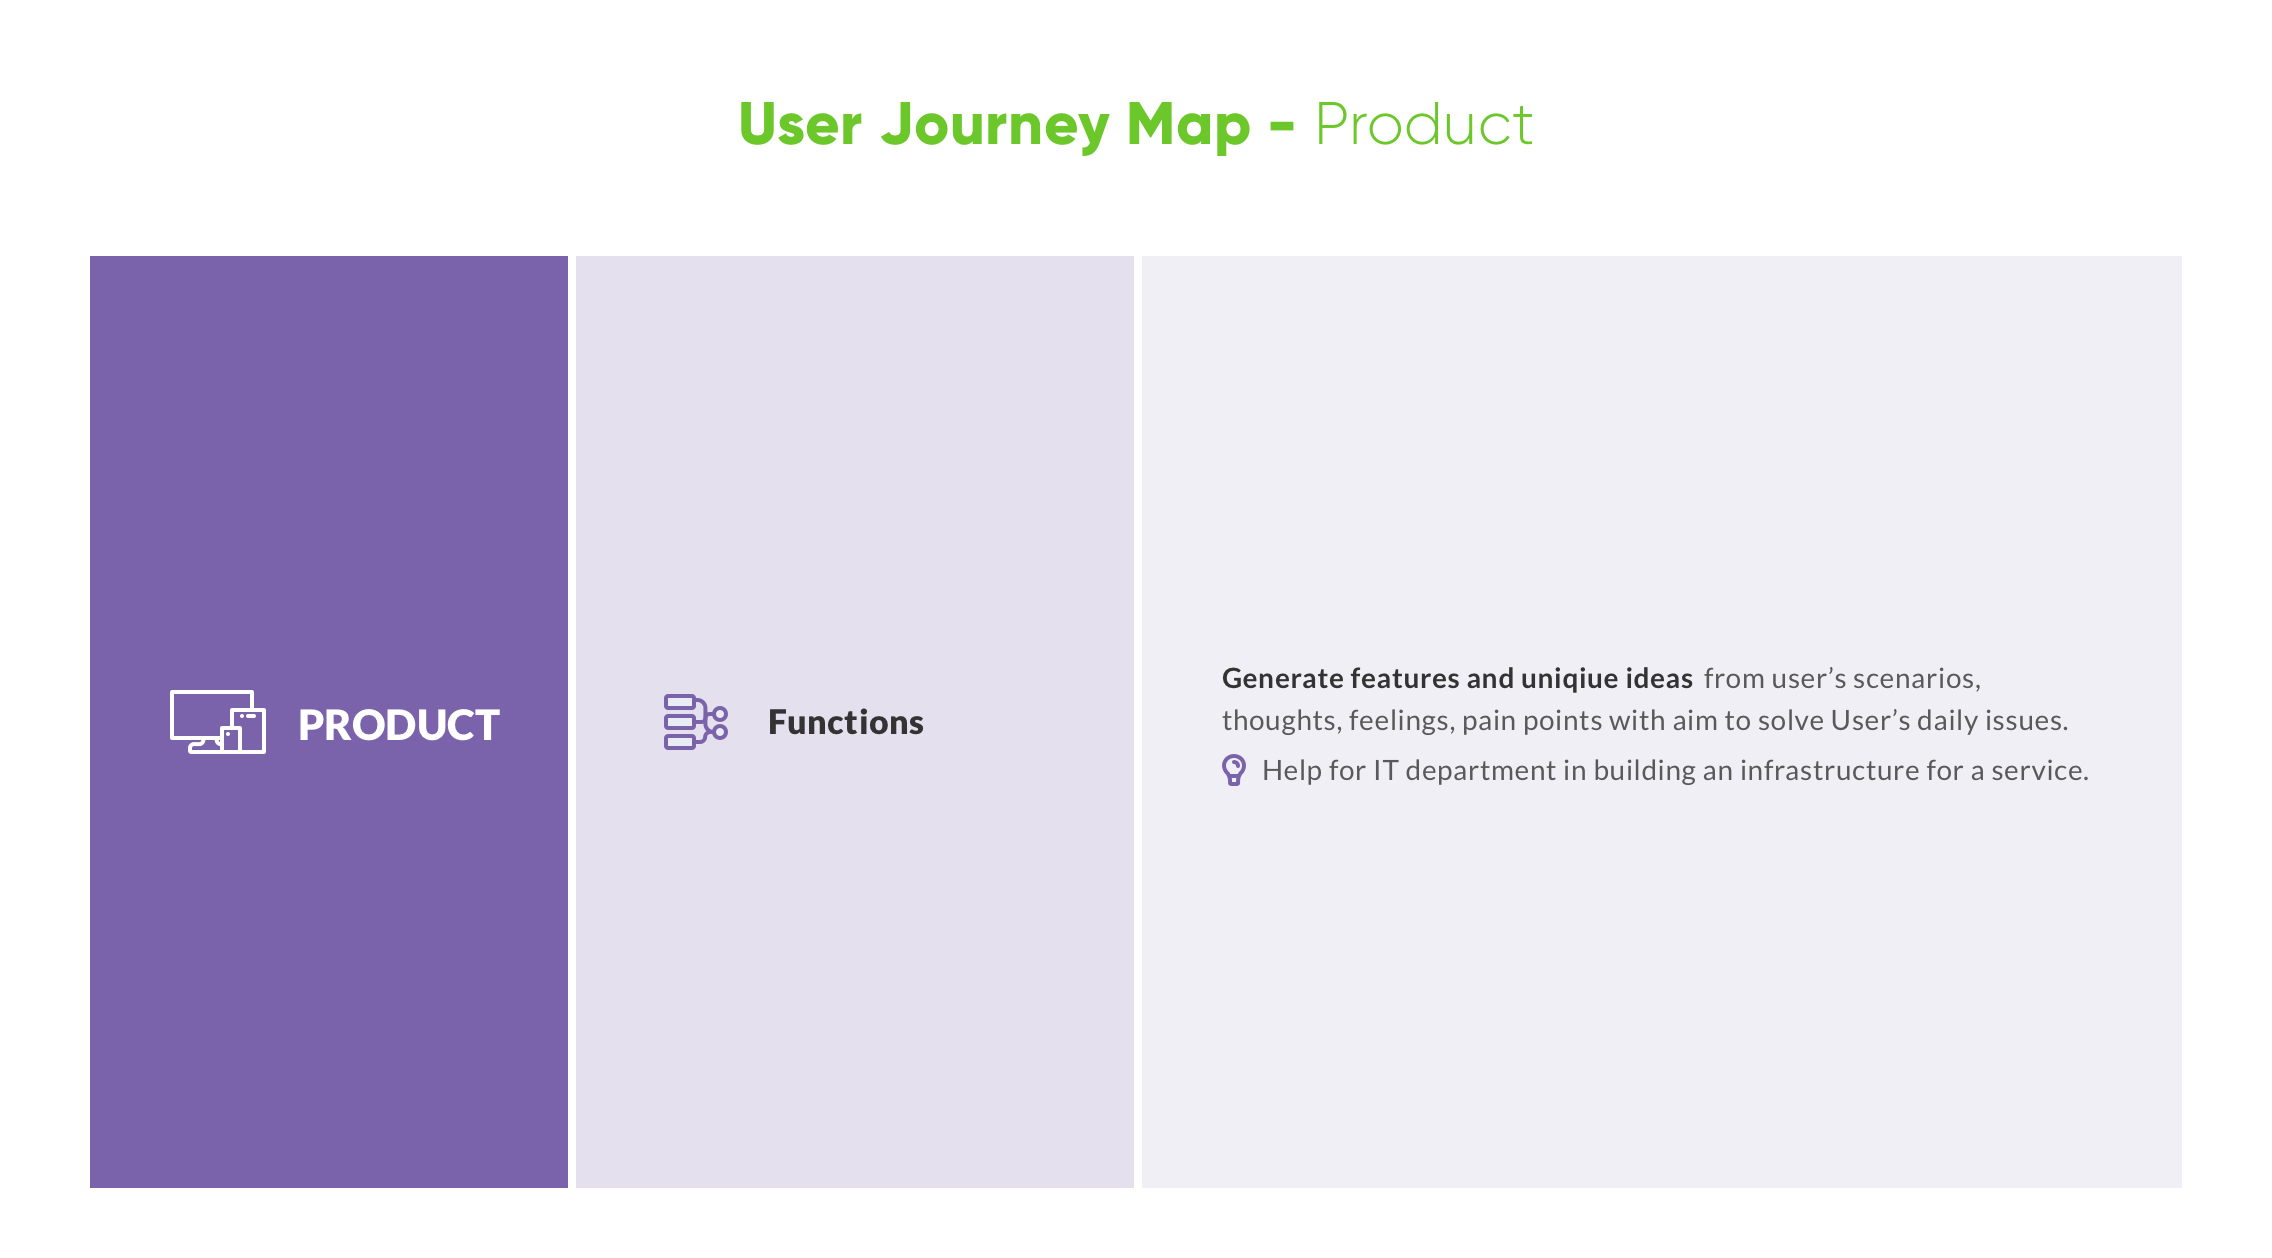 user-journey-mapping-uxda-work-process-ux-design.jpg-L-4.jpg